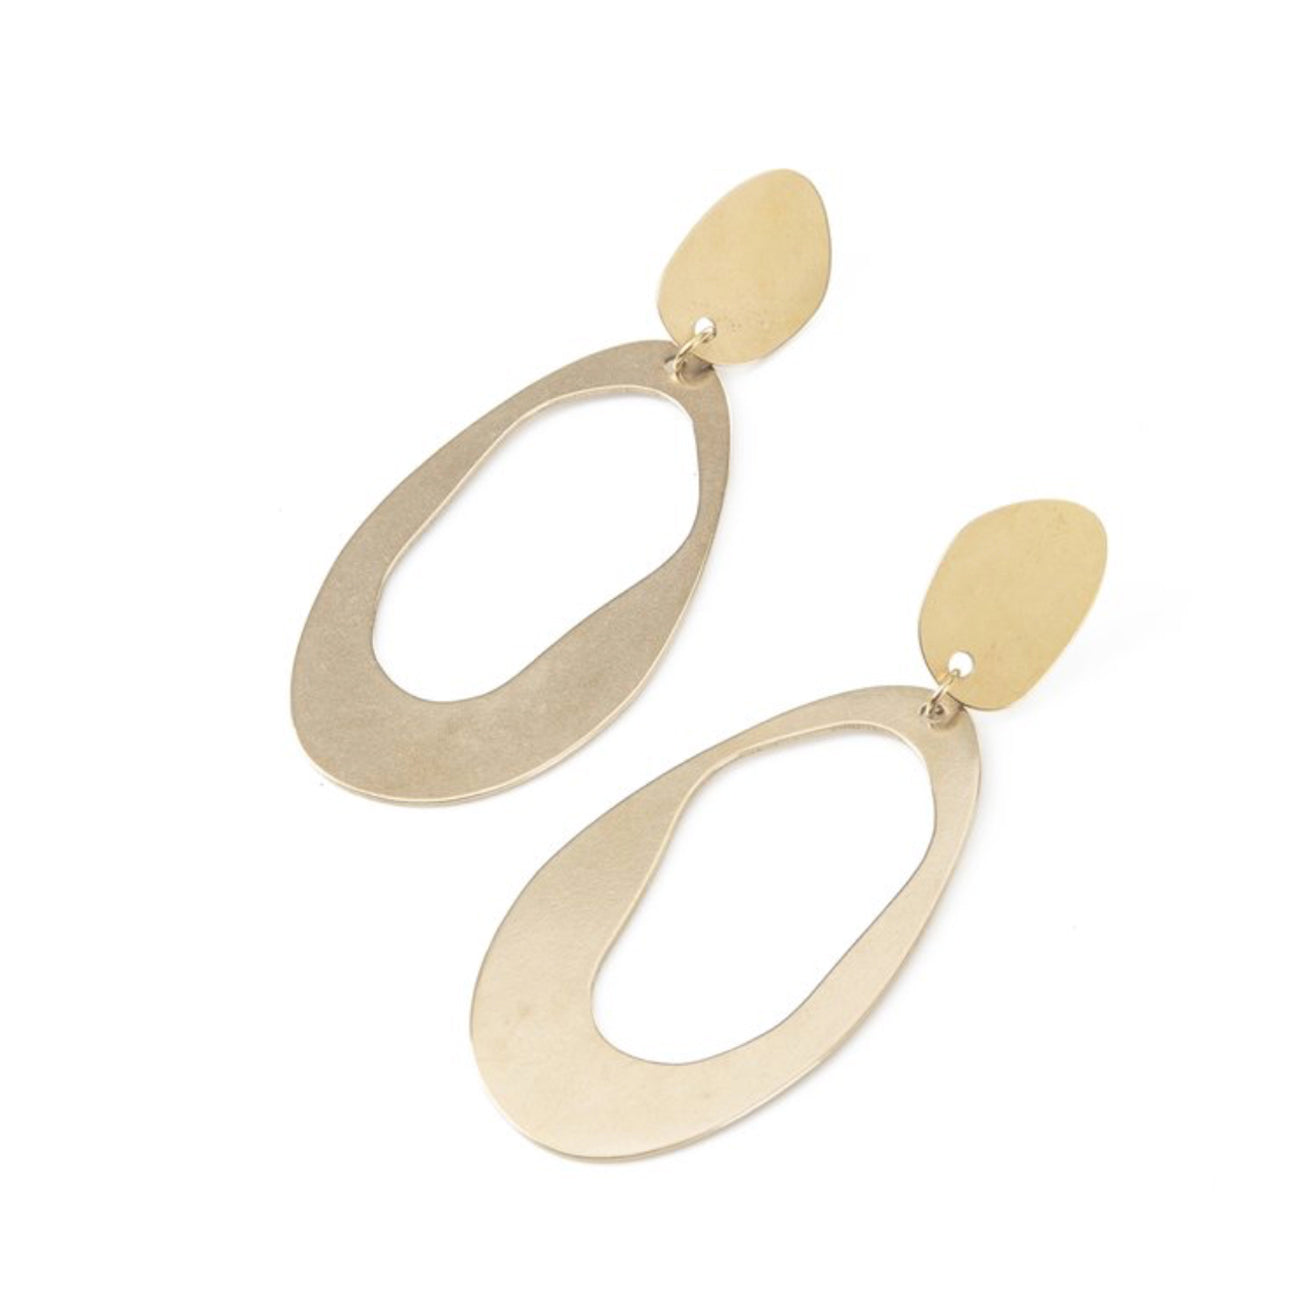 large oval loop earrings in brass